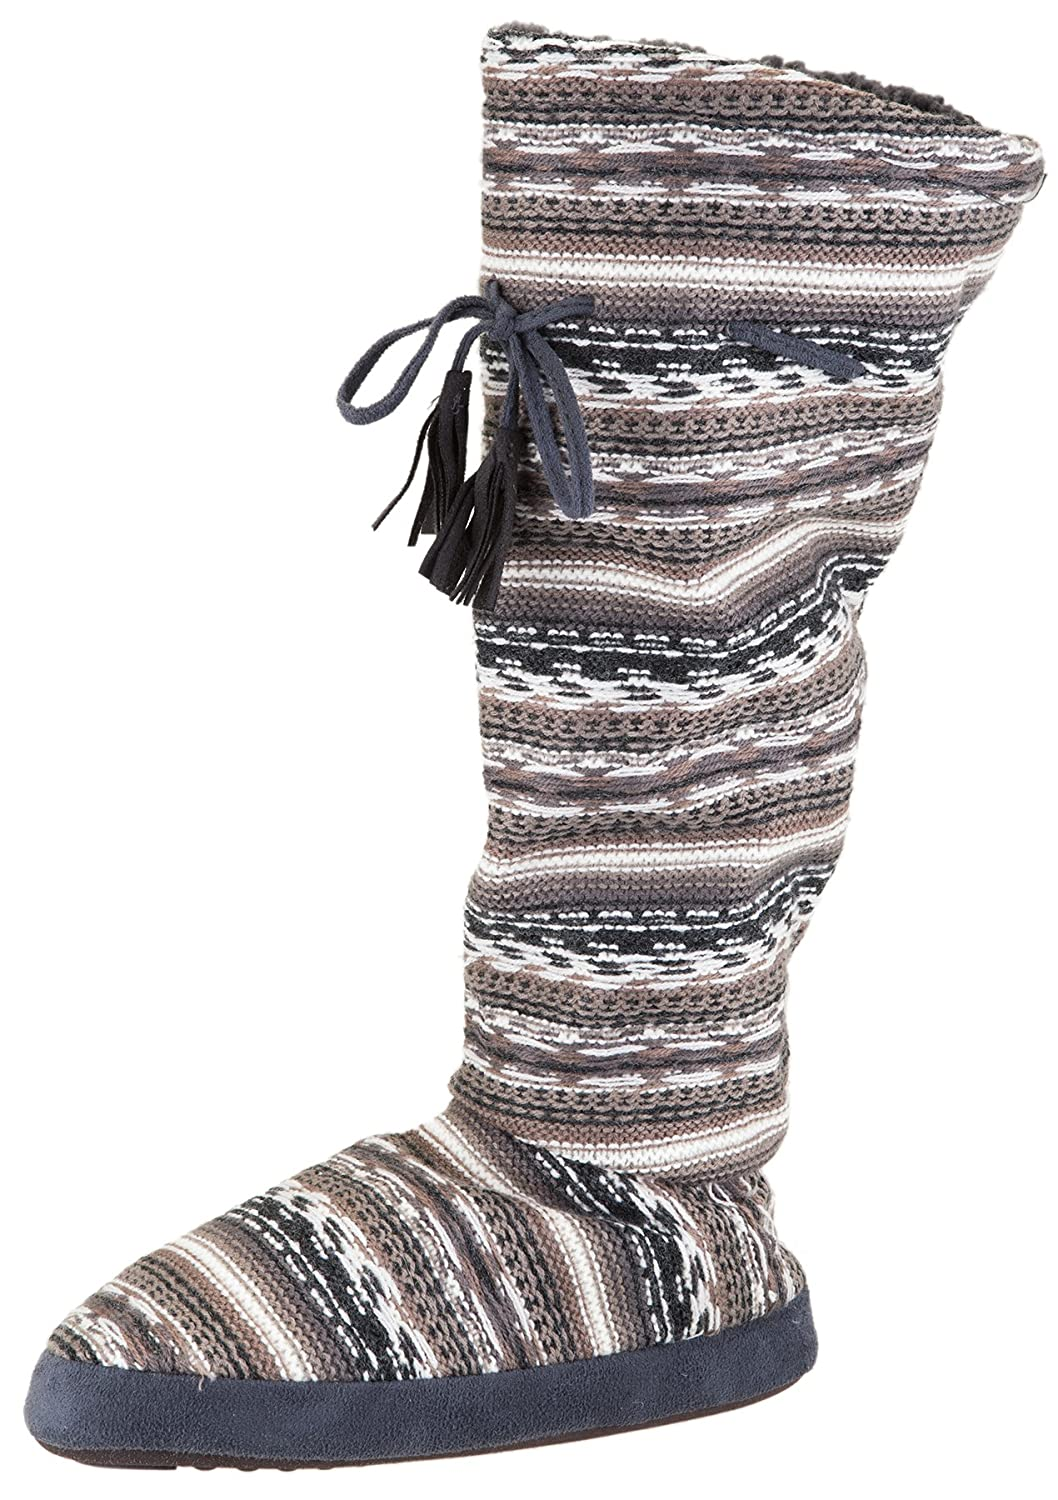 Muk Luks Women's Tall Fleece-Lined Slipper Boot